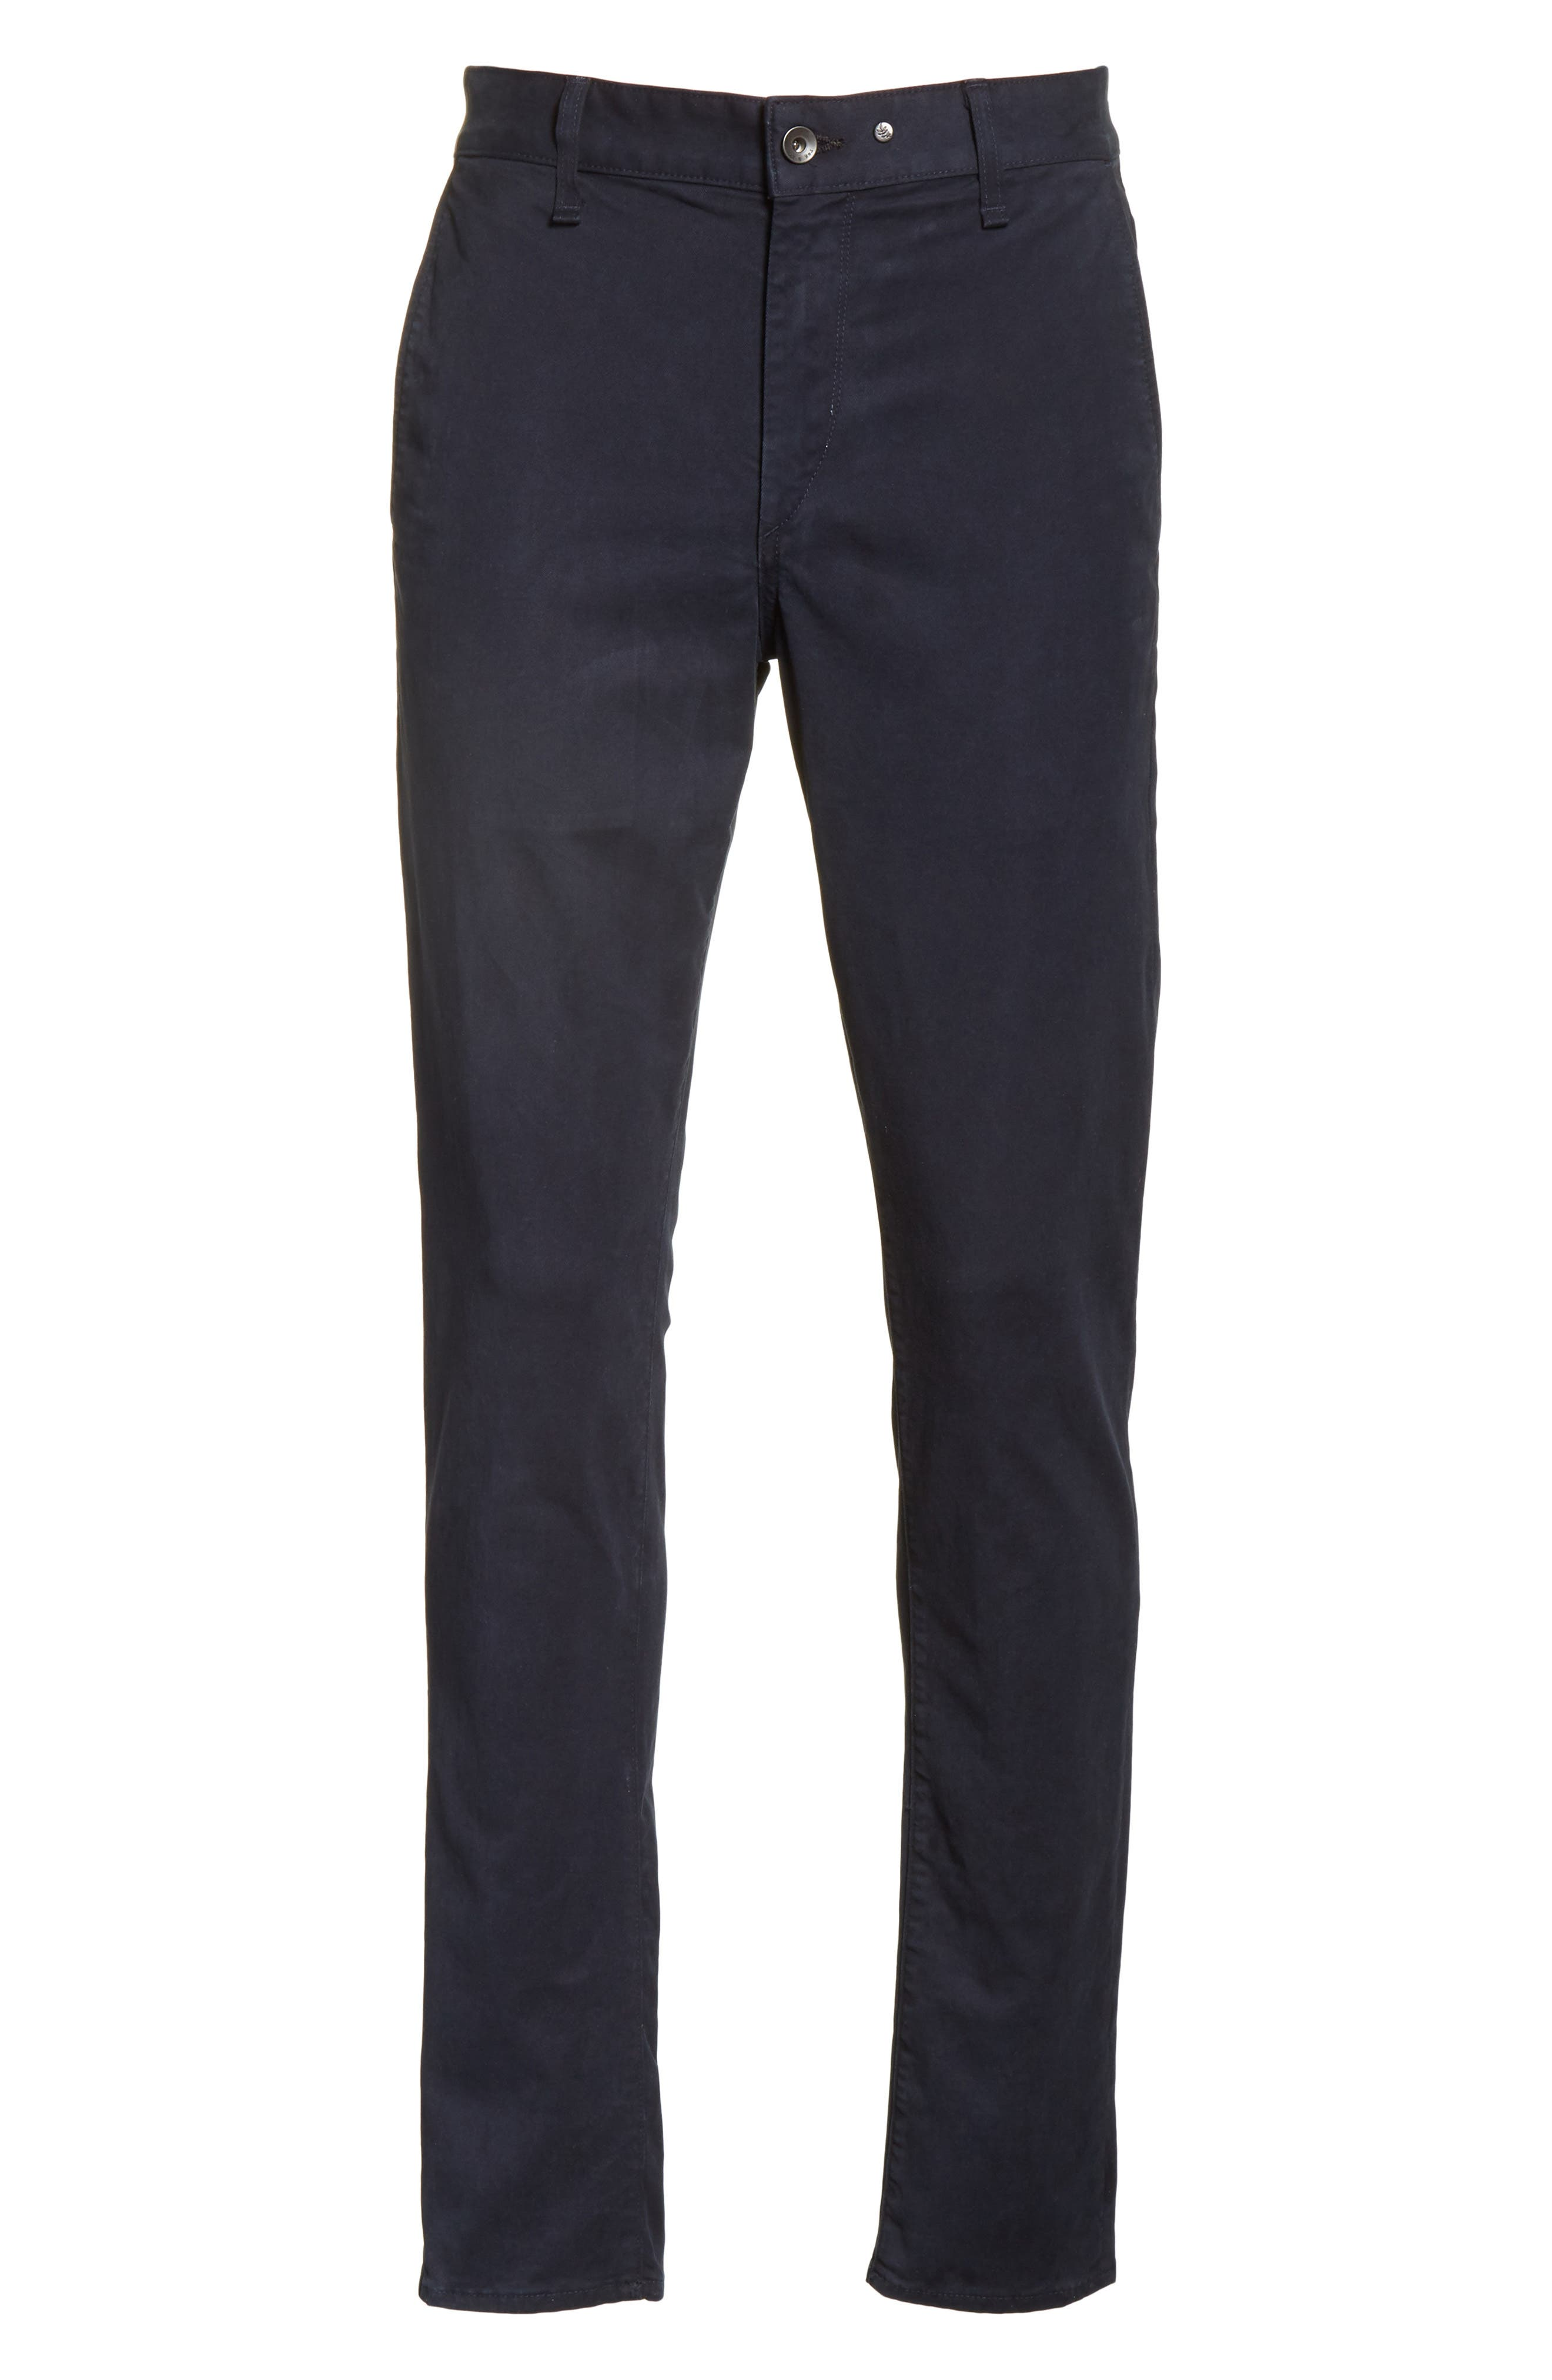 Fit 1 Chinos,                             Alternate thumbnail 6, color,                             NAVY